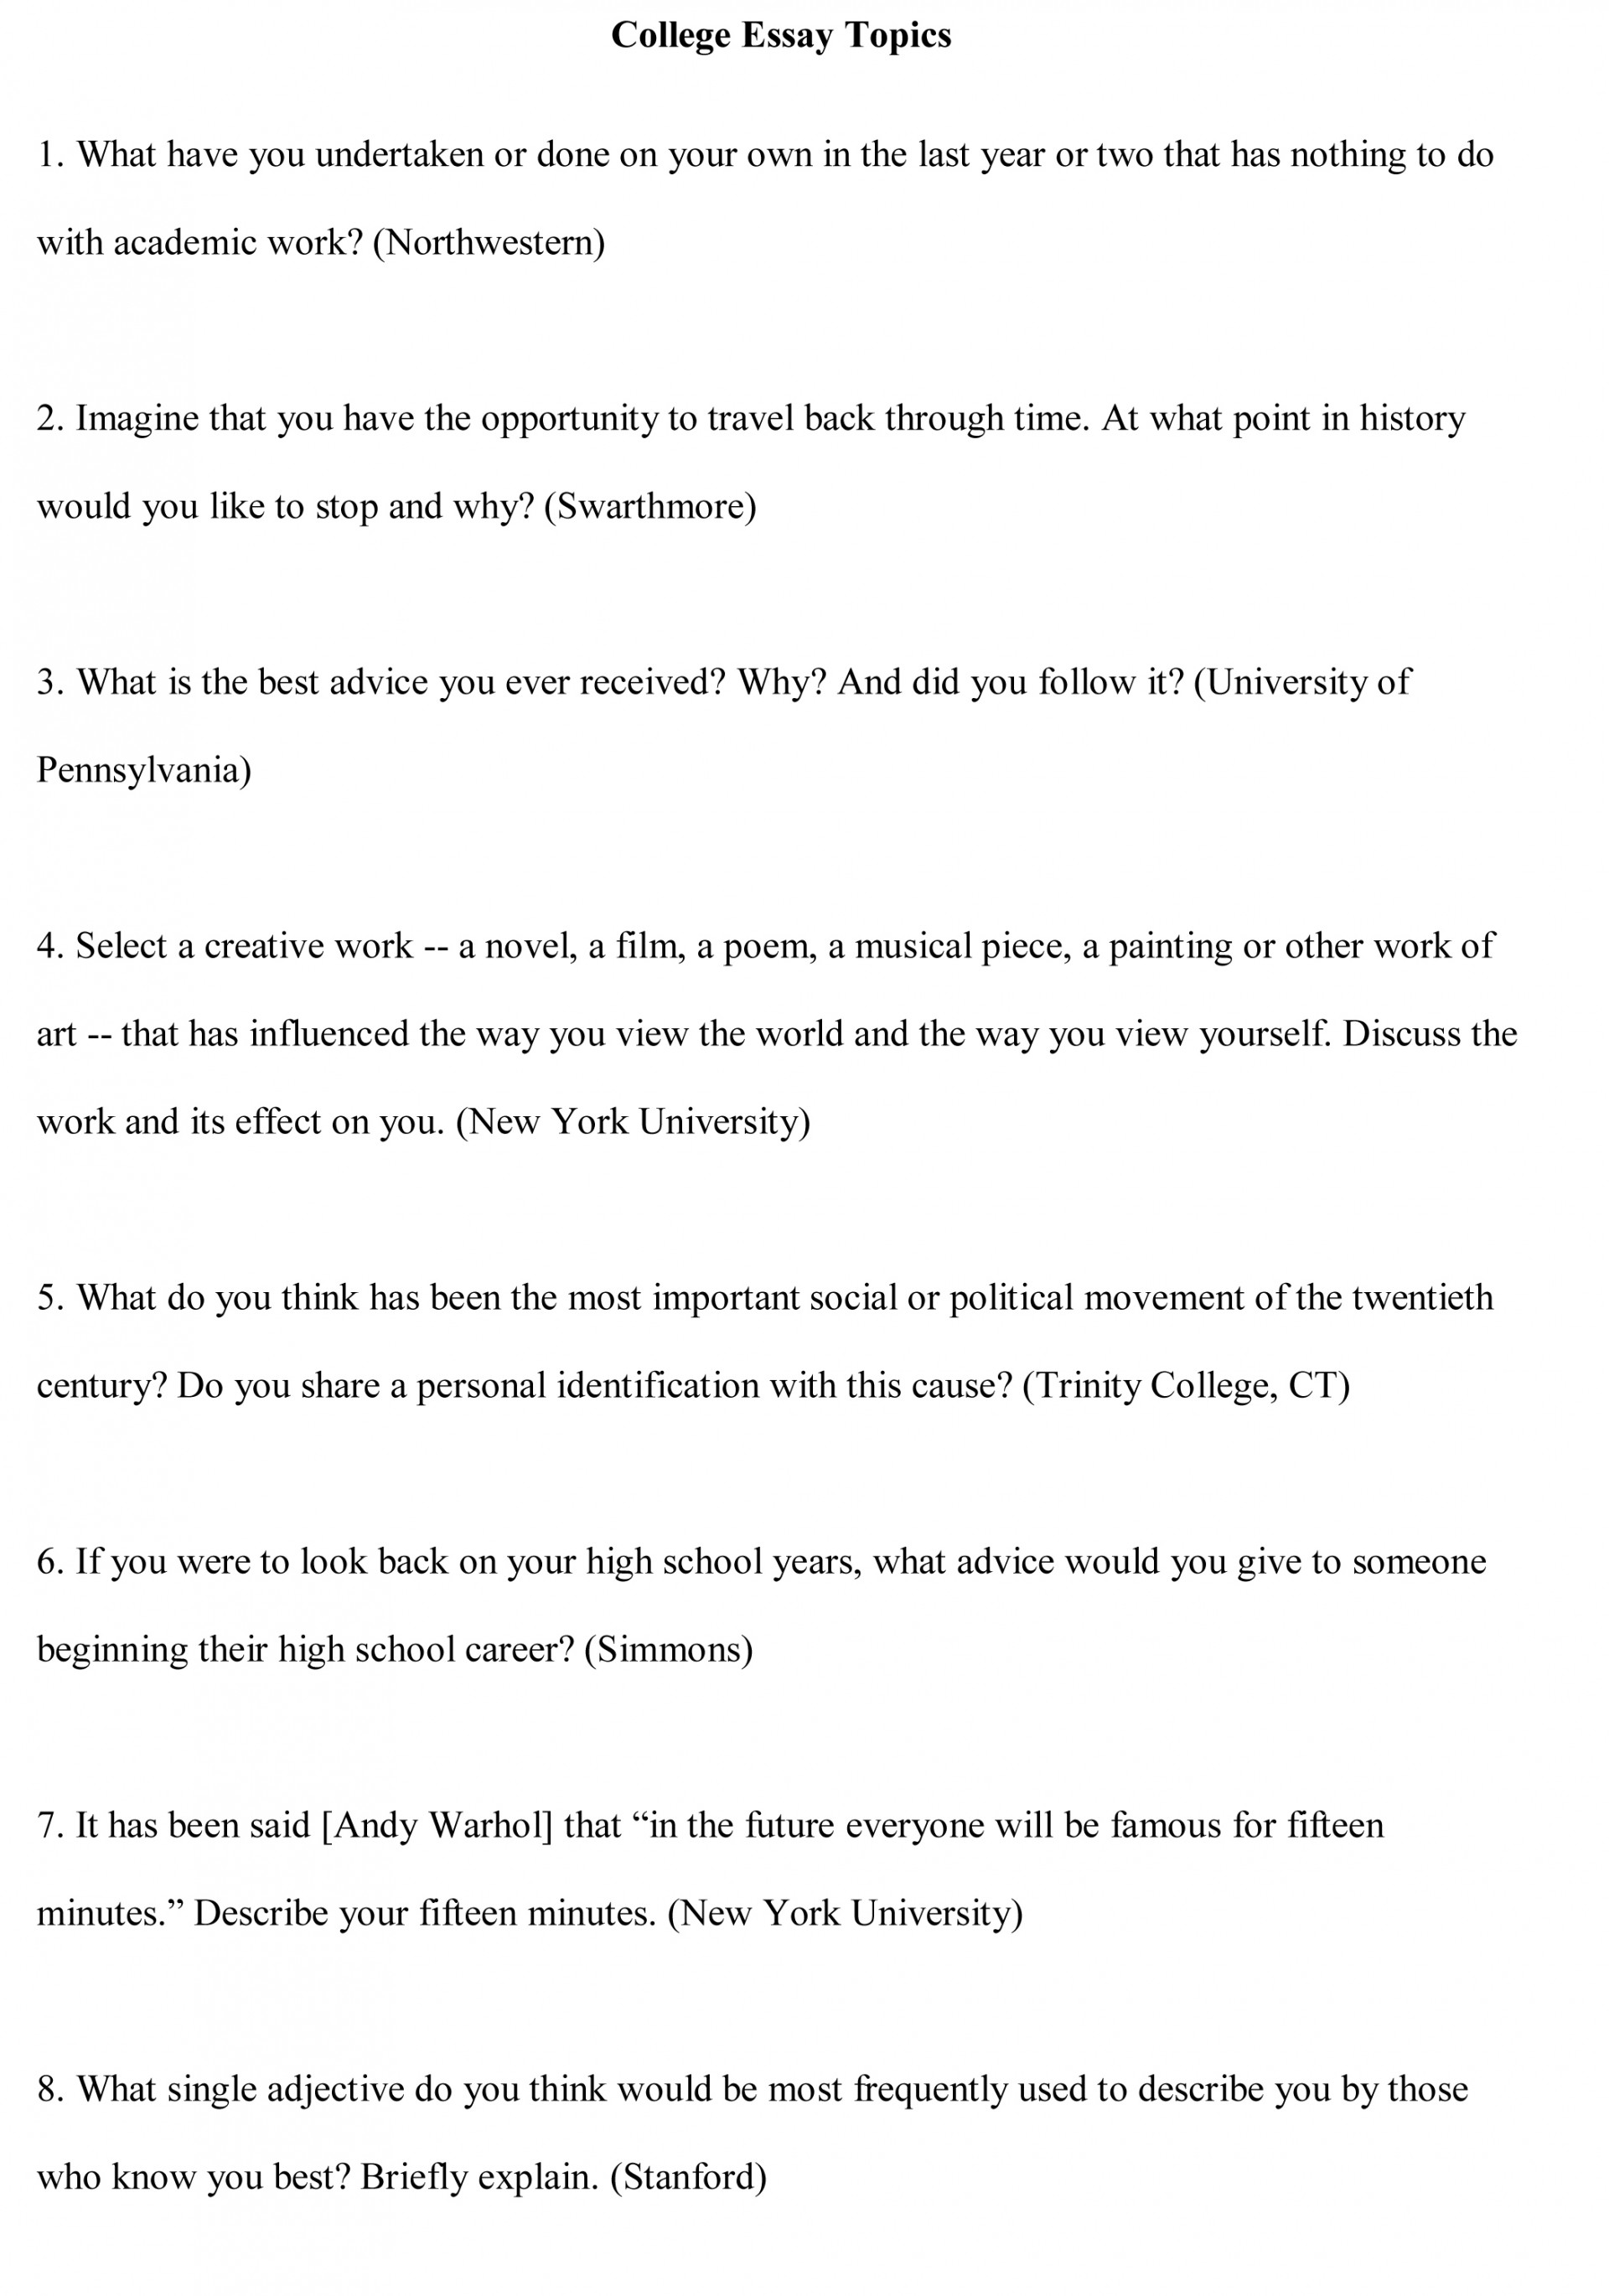 008 Essay Example College Topics Free Sample1 How To Excellent Essays Write An Expository For 4th Grade Make Longer With Words Start Introduction 1920